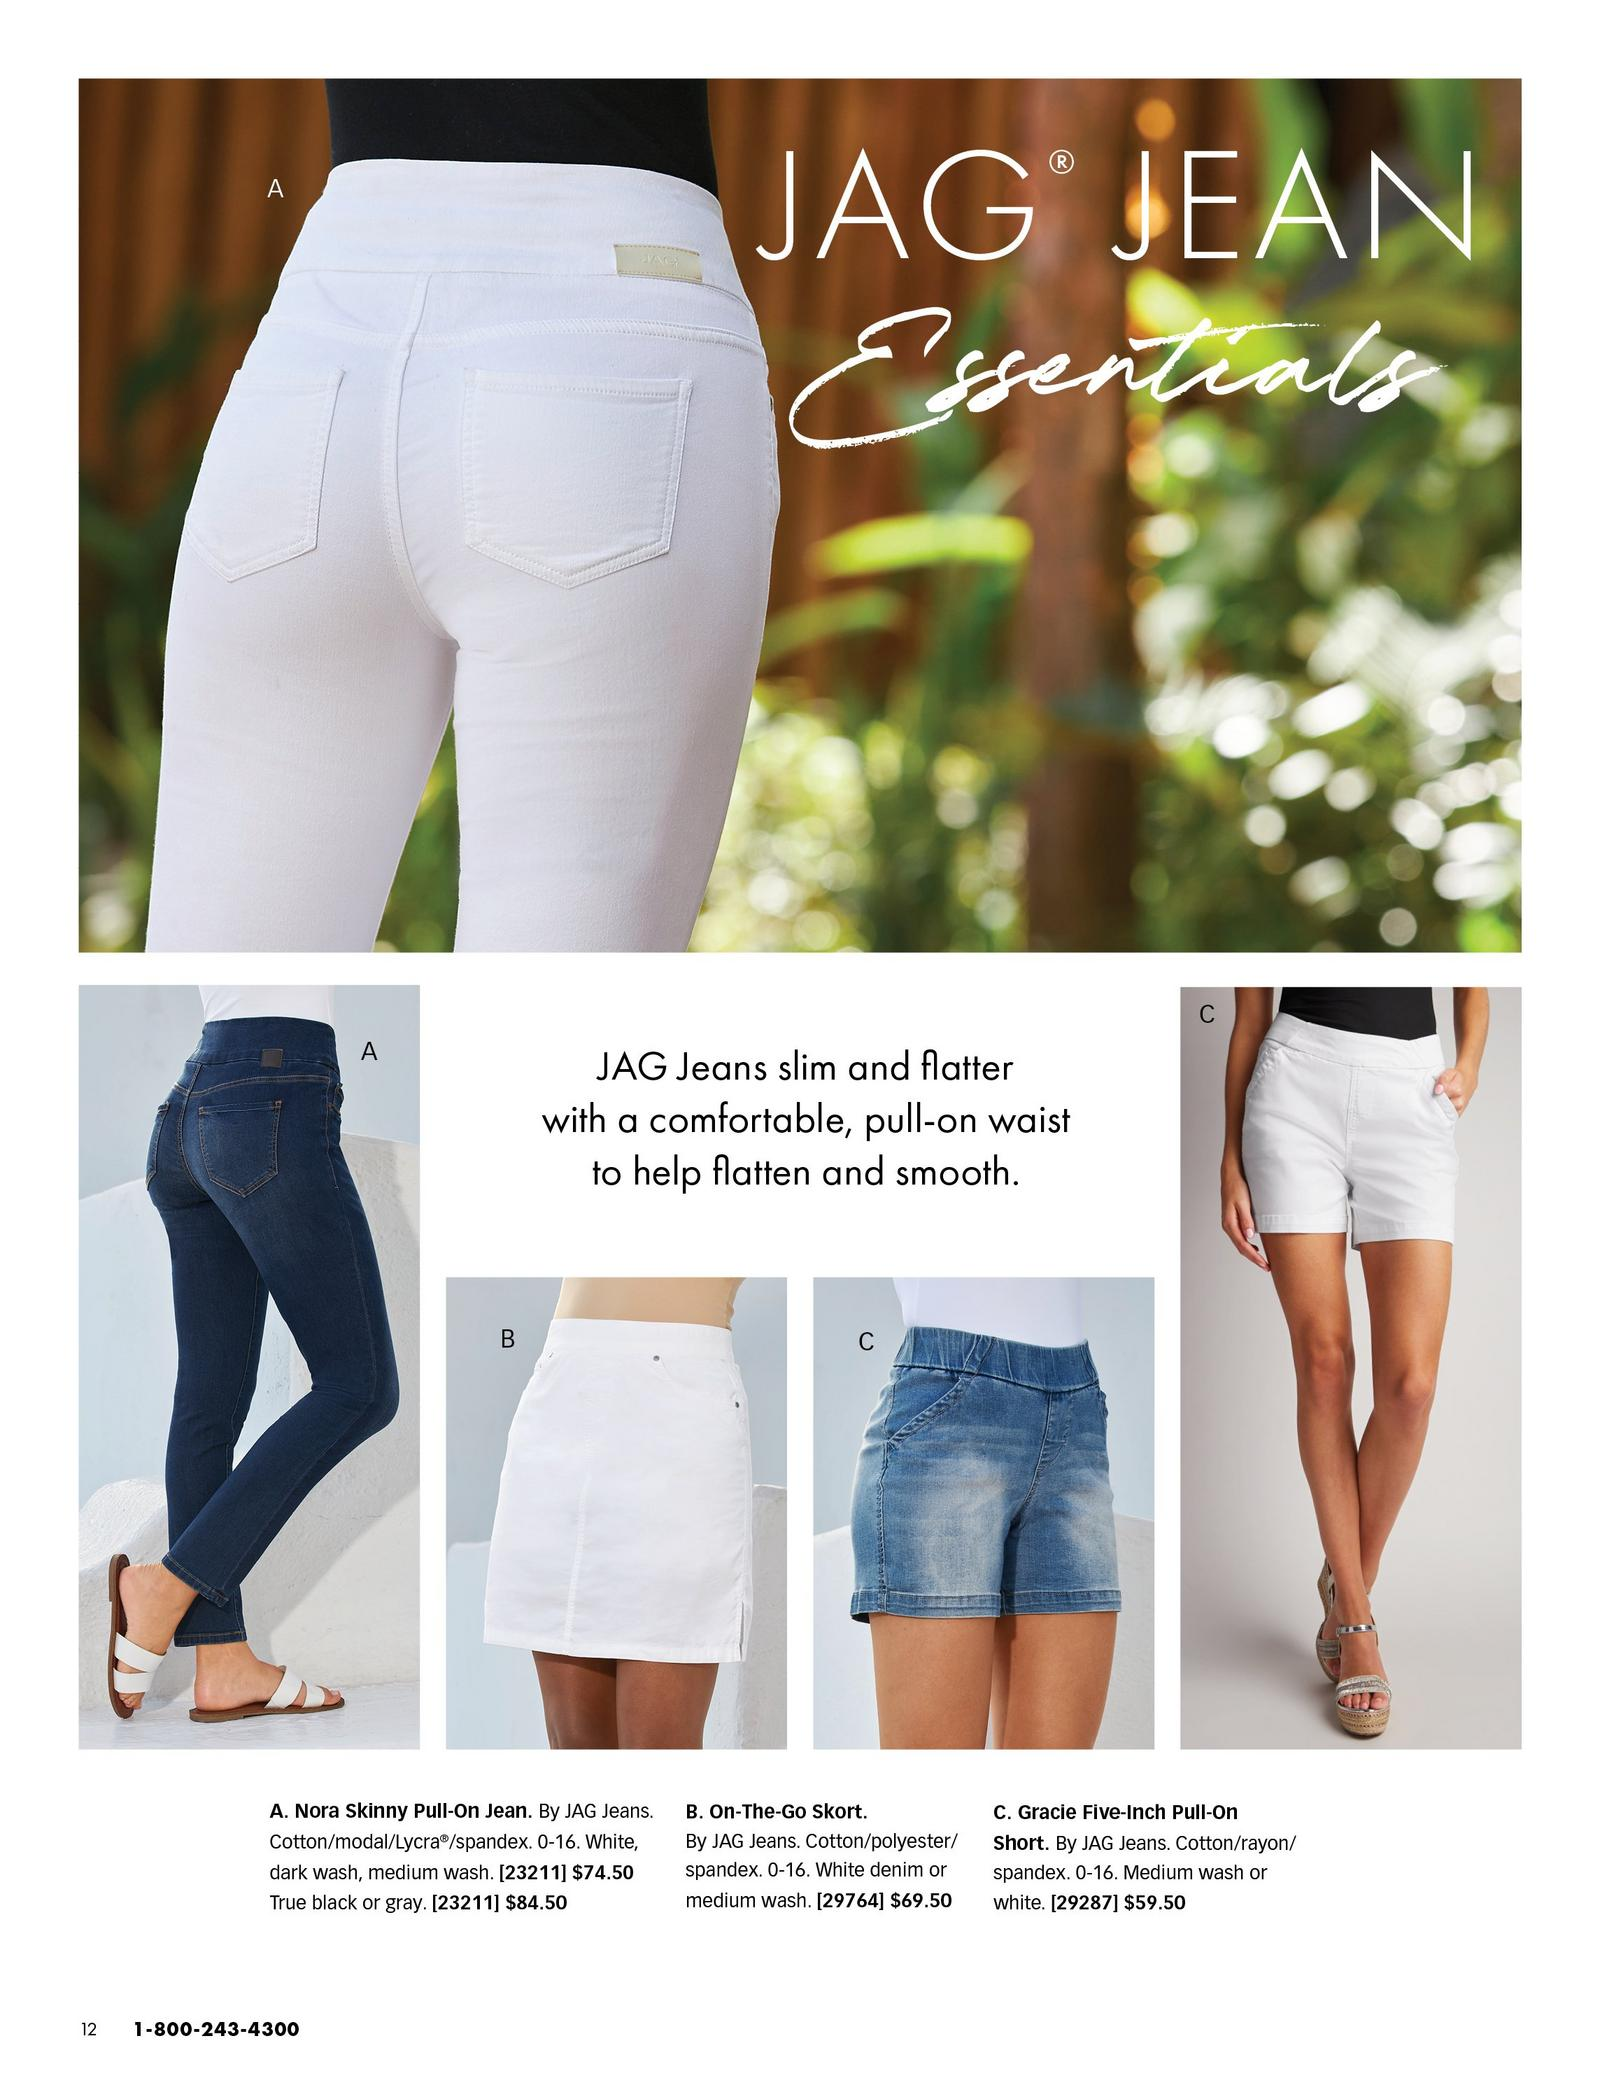 top model wearing white jeans. bottom from left to right: dark wash jeans and white double strap sandals, white skort, blue shorts, and white shorts.